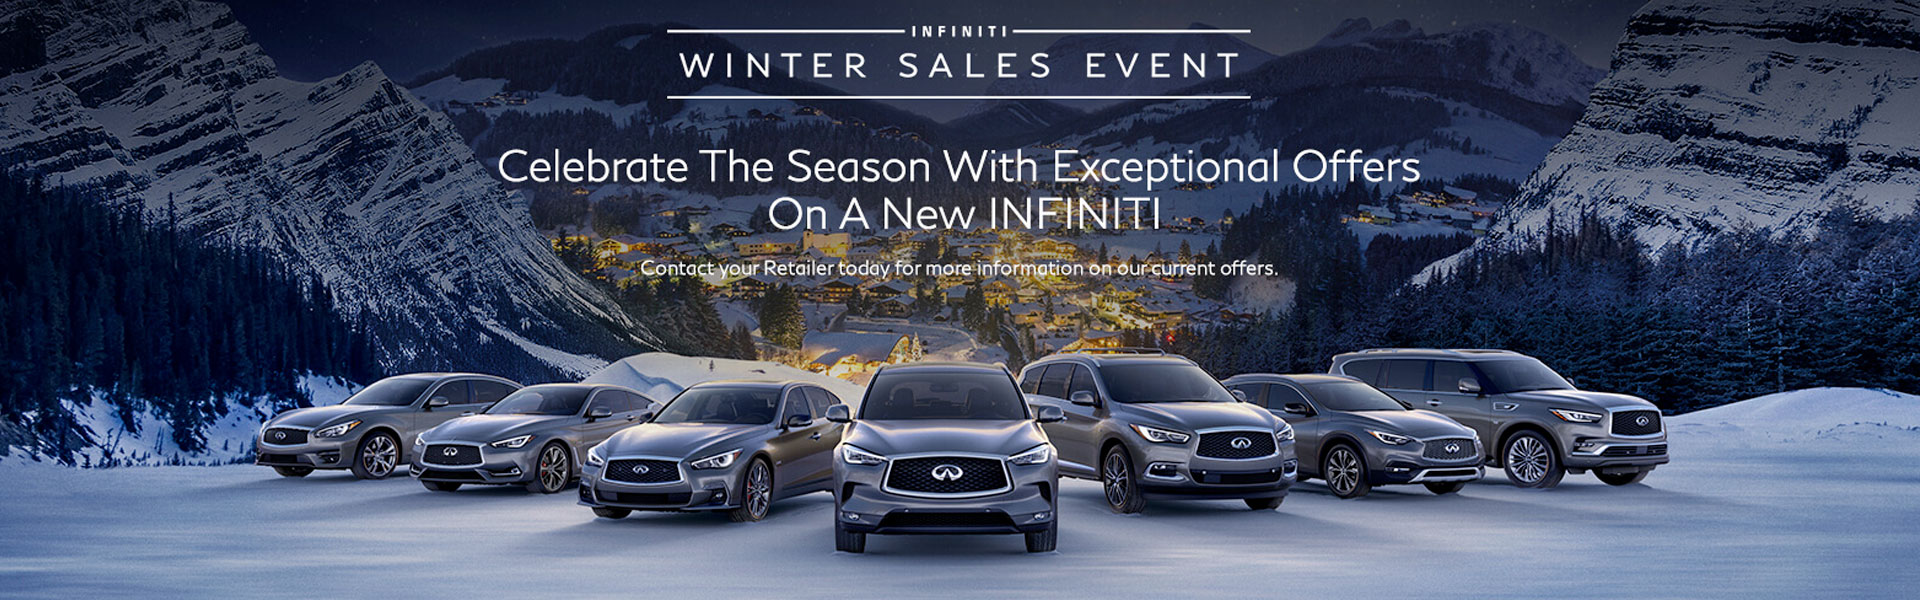 INFINITI WINTER EVENT